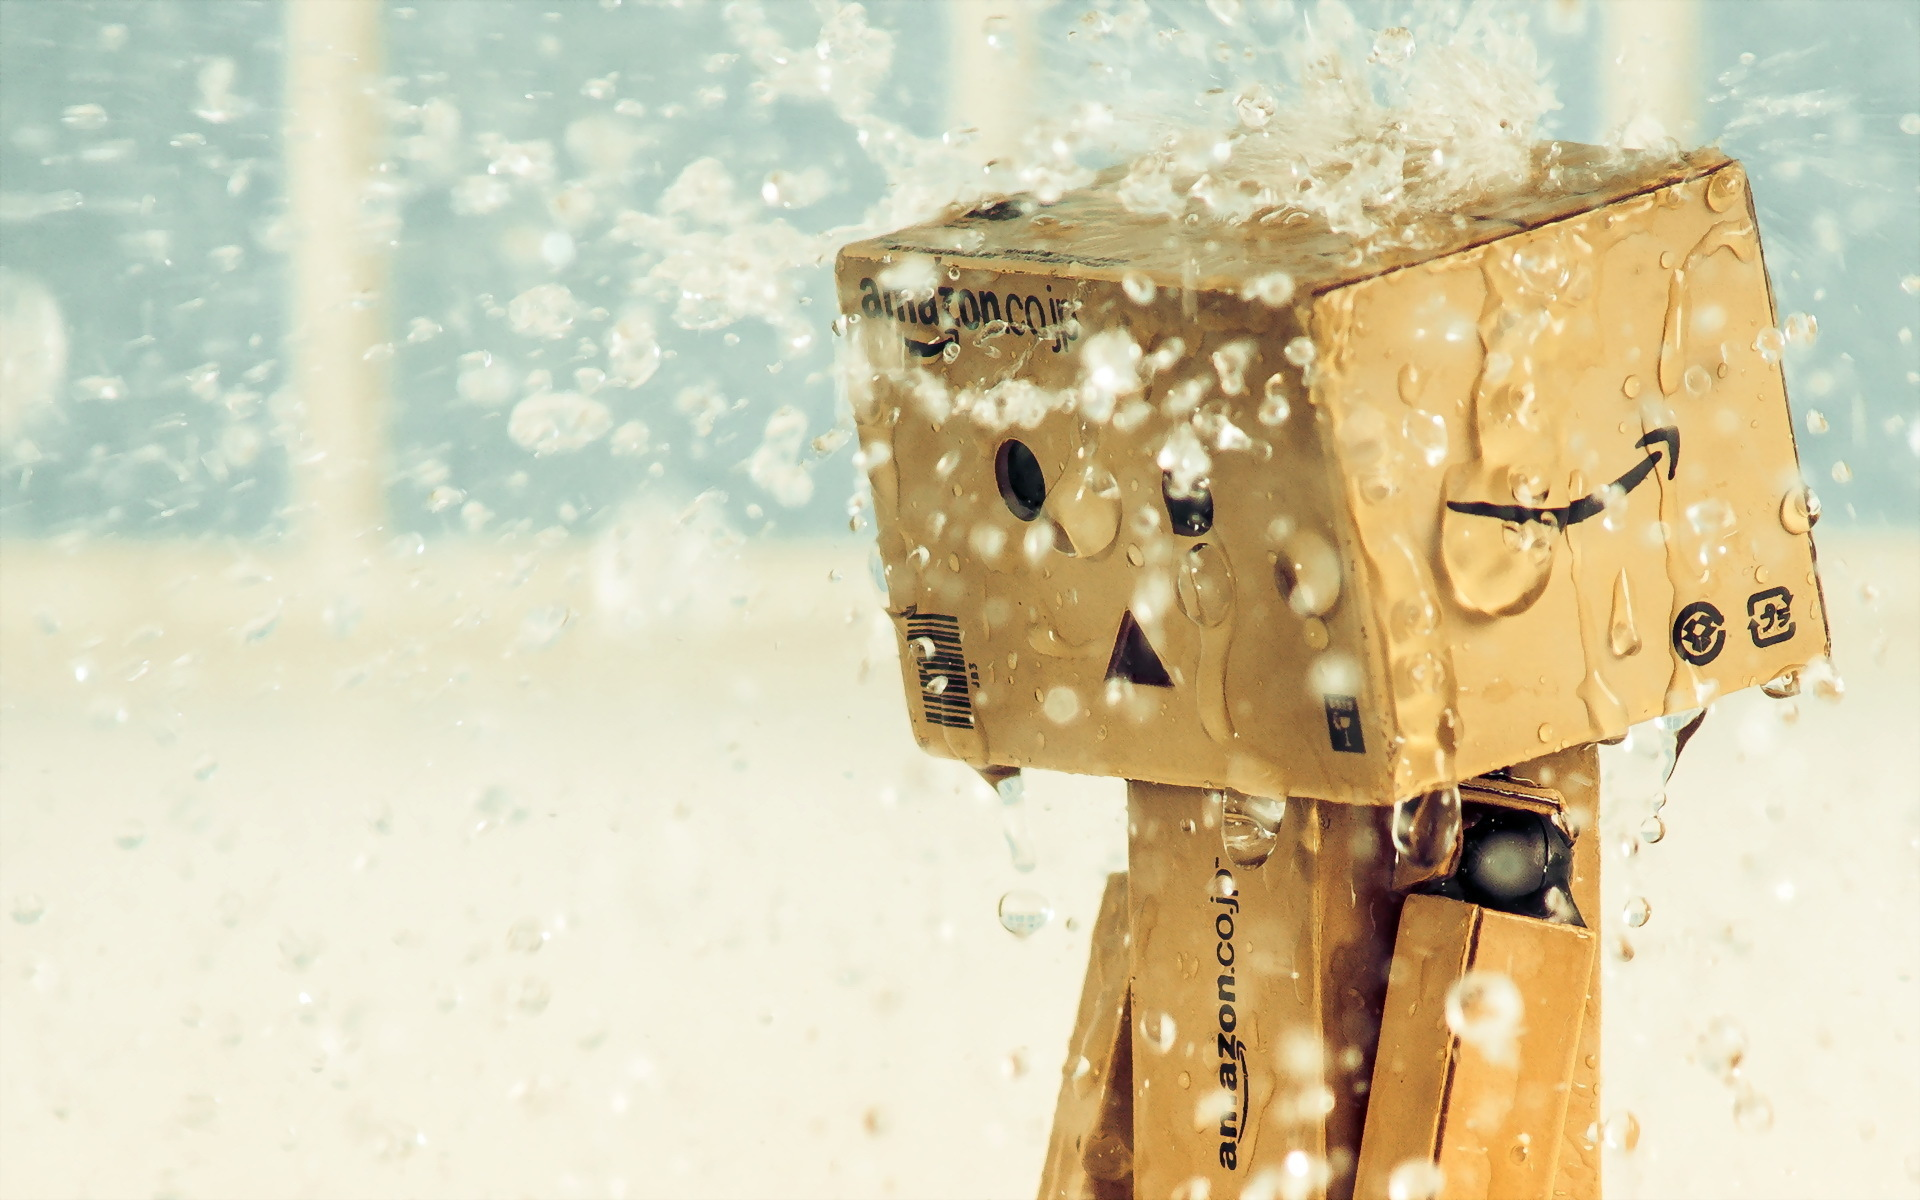 cardboard robot wallpaper hd - photo #4